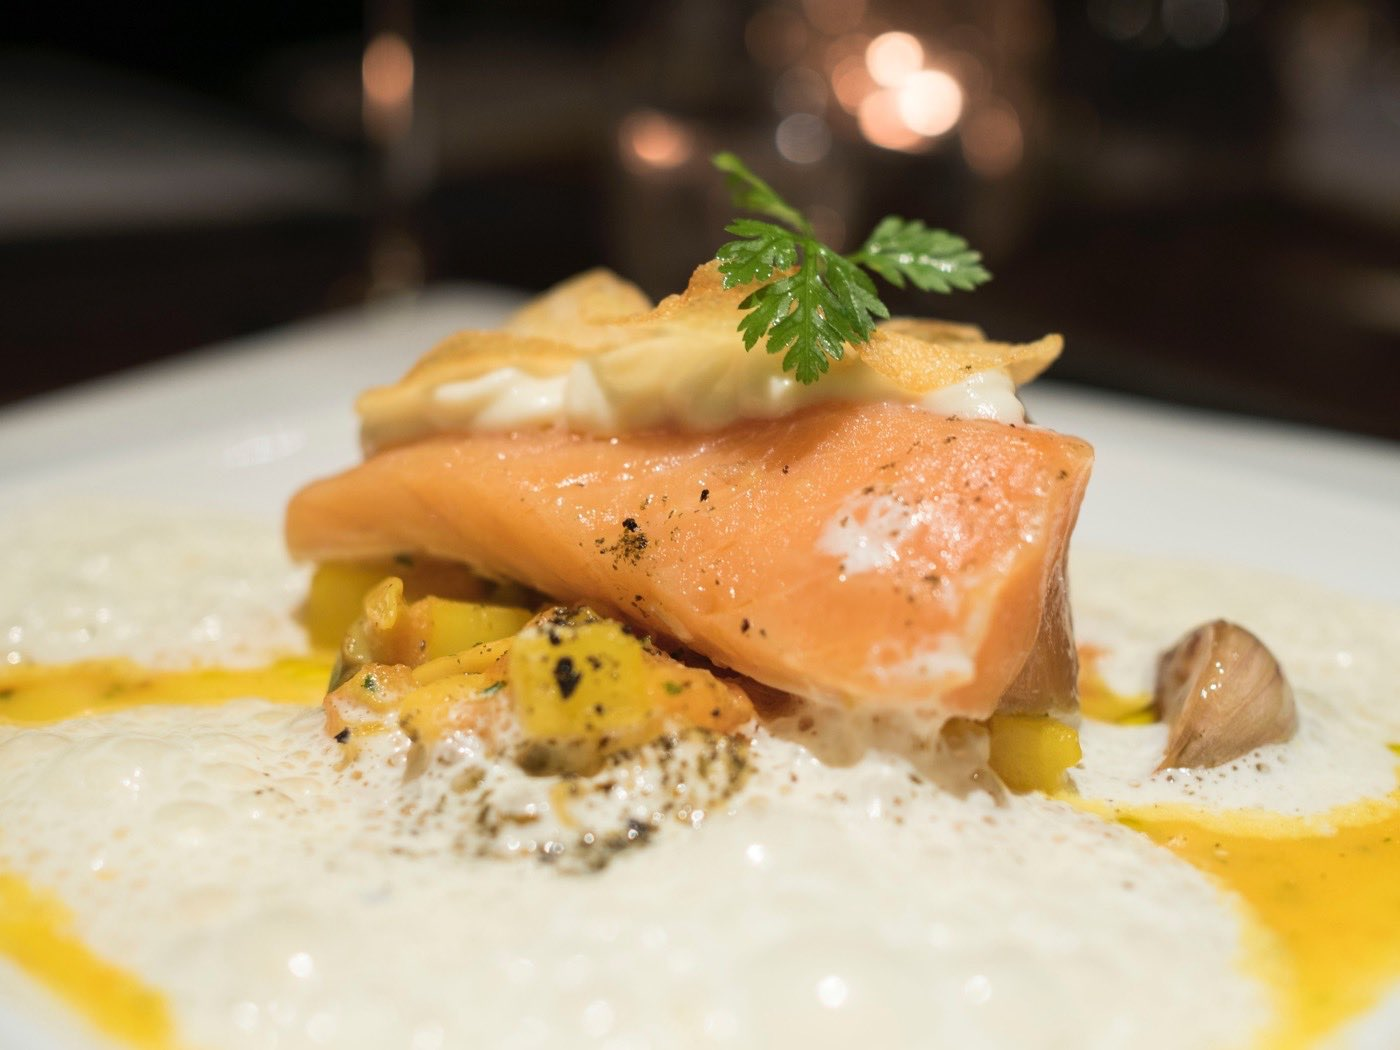 Beautifully cooked salmon